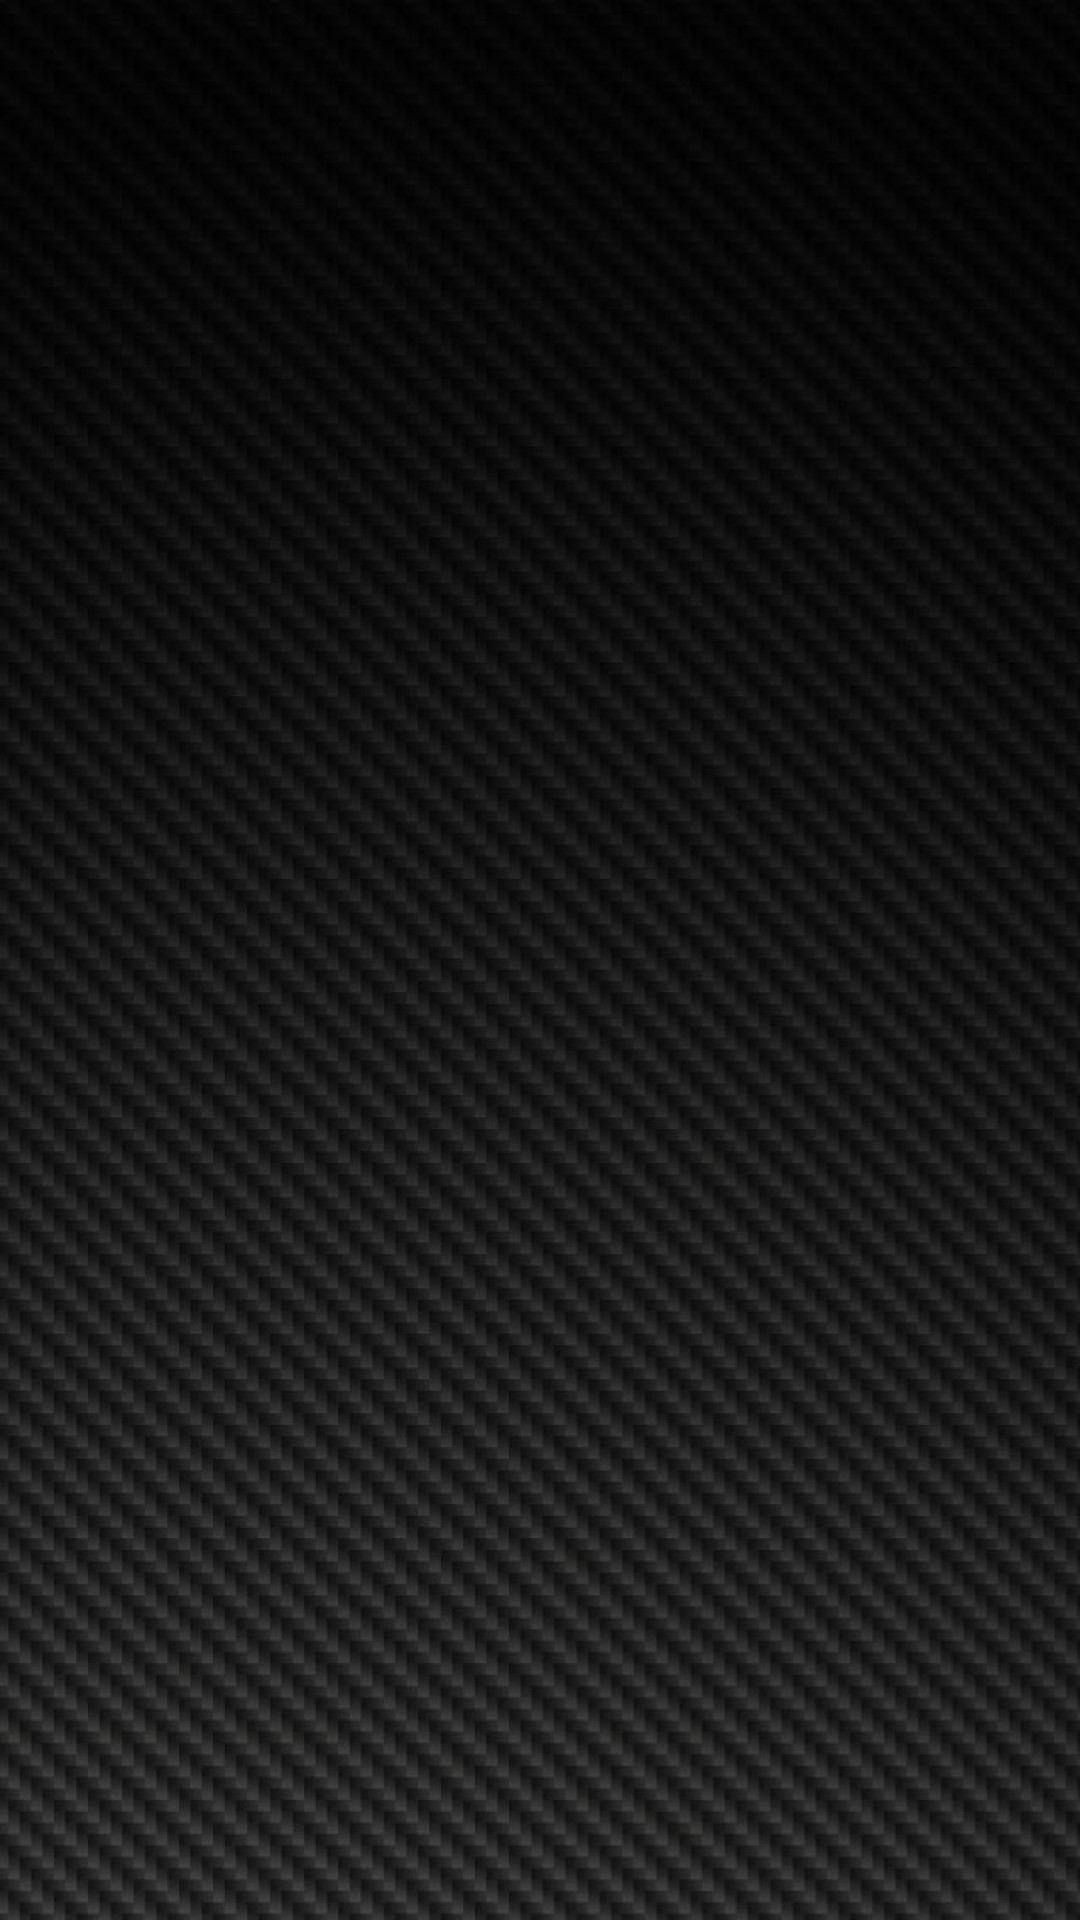 for Iphone 5 carbon fiber wallpaper iphone 5 wallpapers background and 1080x1920